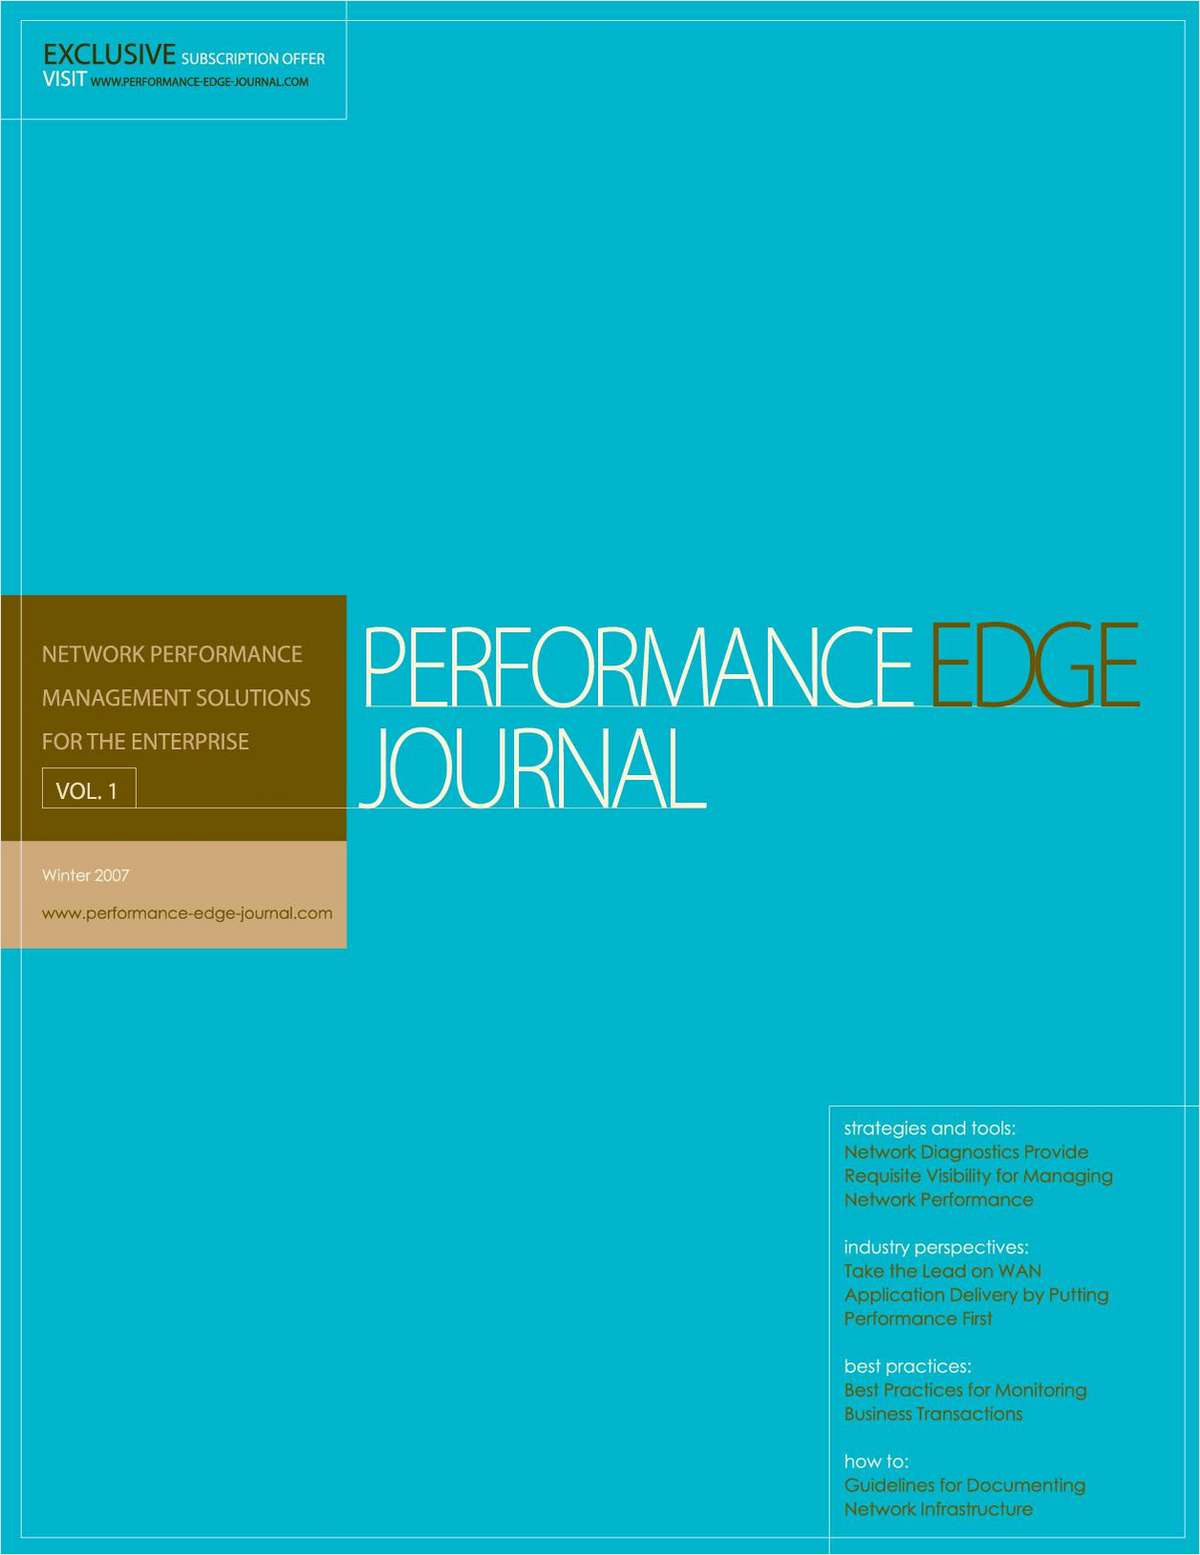 Network Performance Edge Journal — Case studies, tools and tips for managing network performance